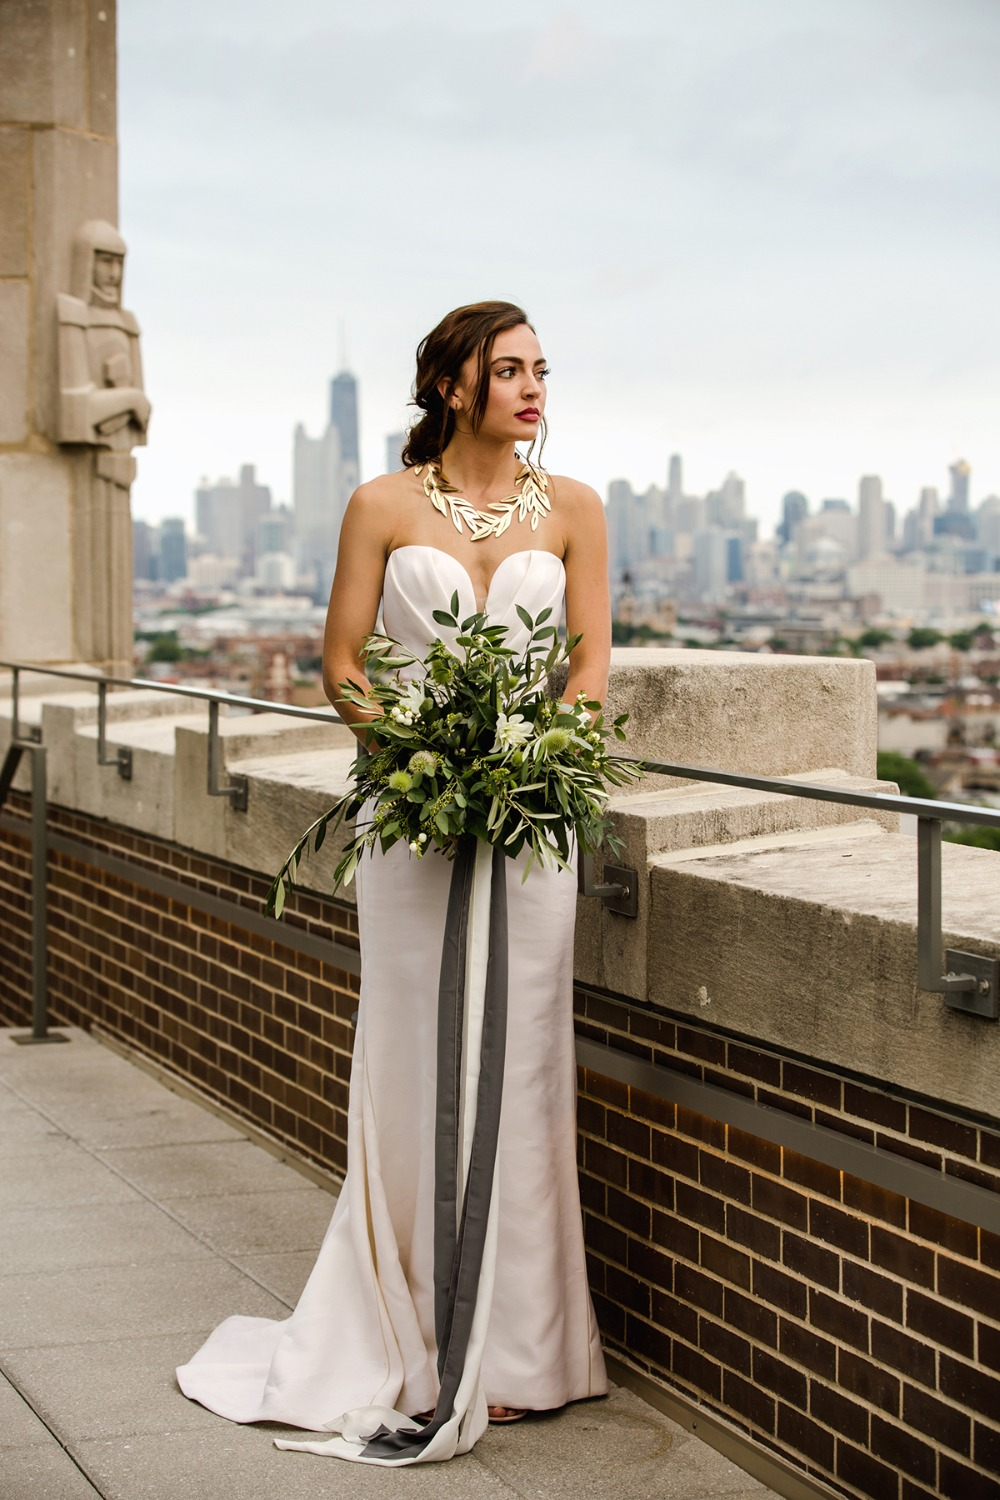 modern bride style with a vintage vibe